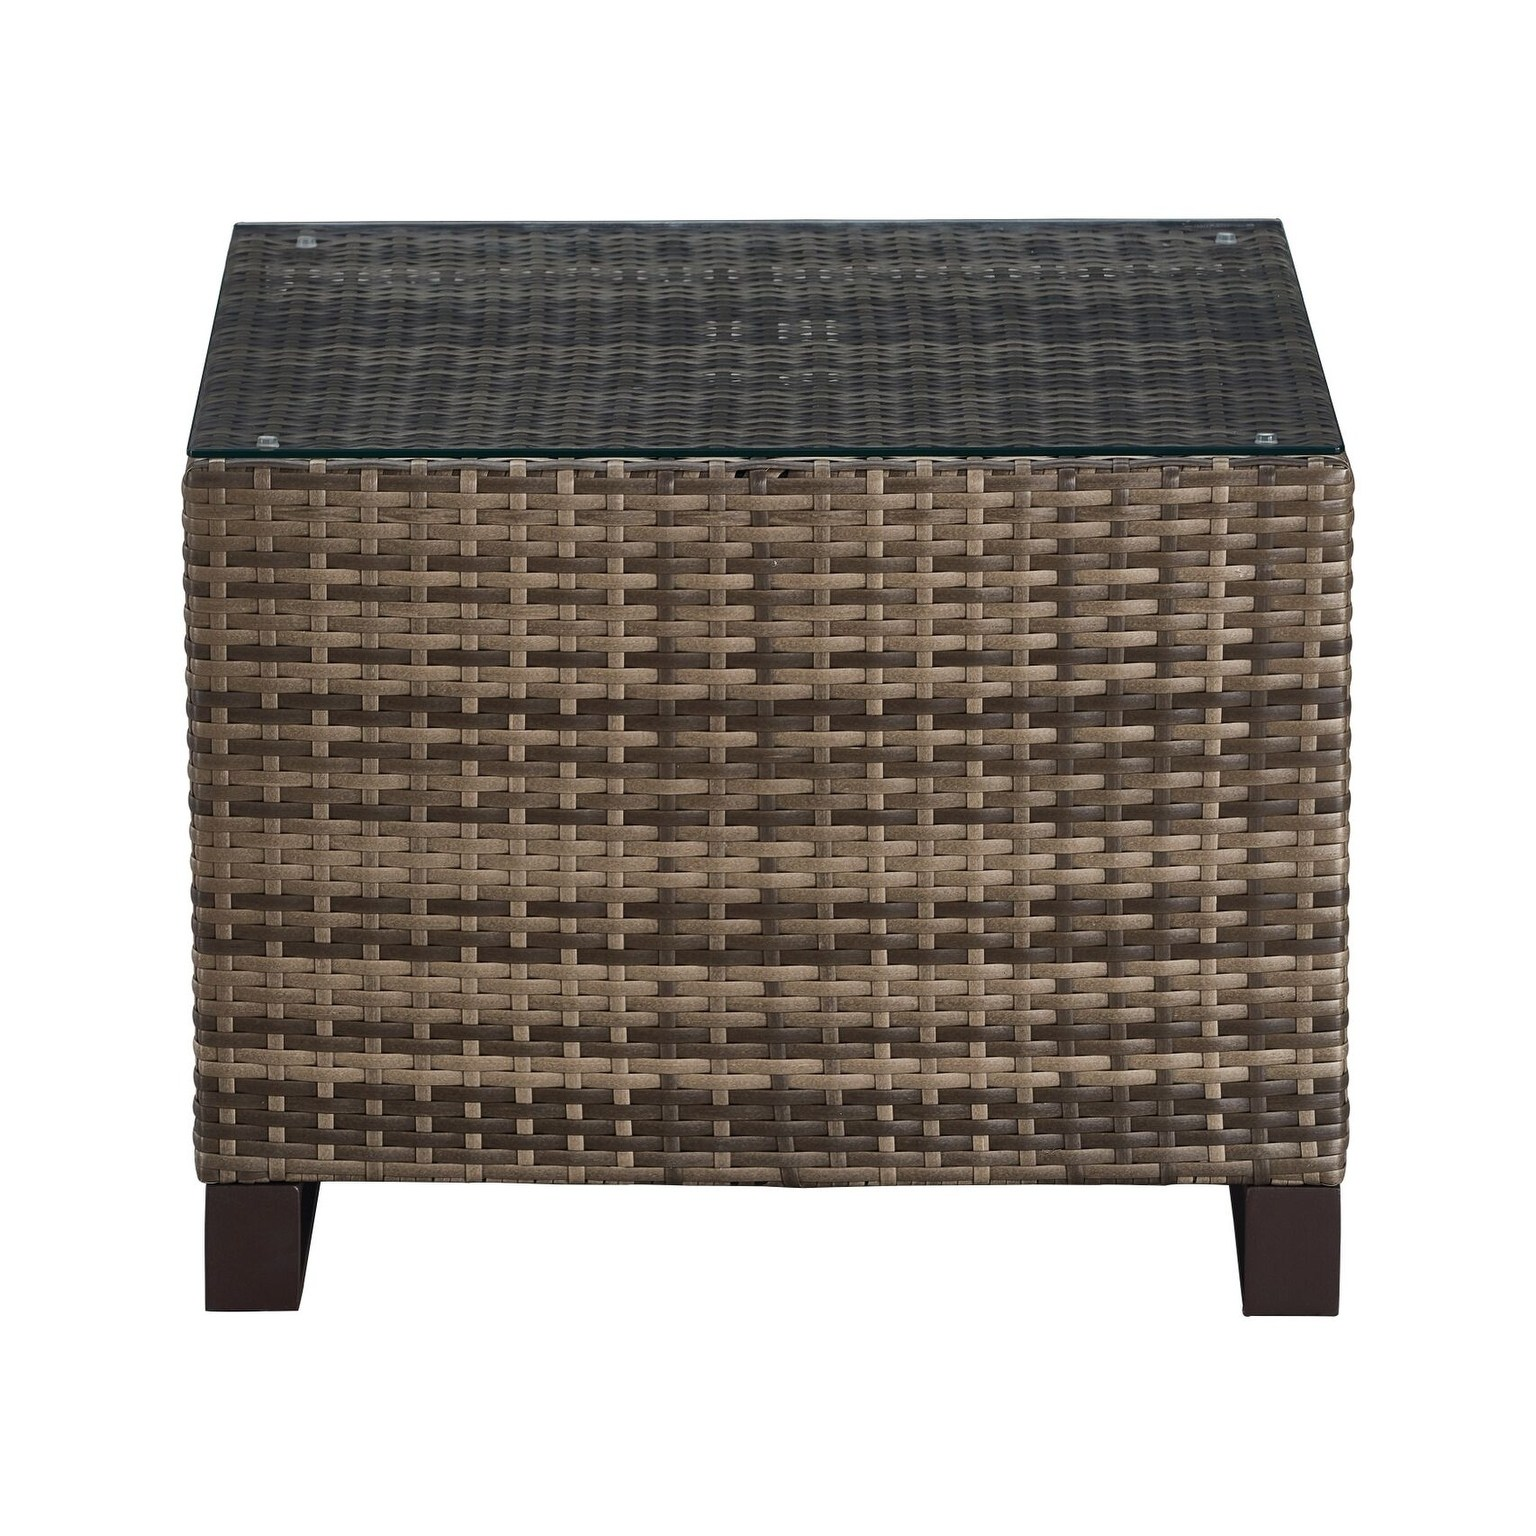 tommy hilfiger oceanside outdoor side table with storage gray coastal wicker accent free shipping today grey dining room black and white small thin coffee vintage brass west elm